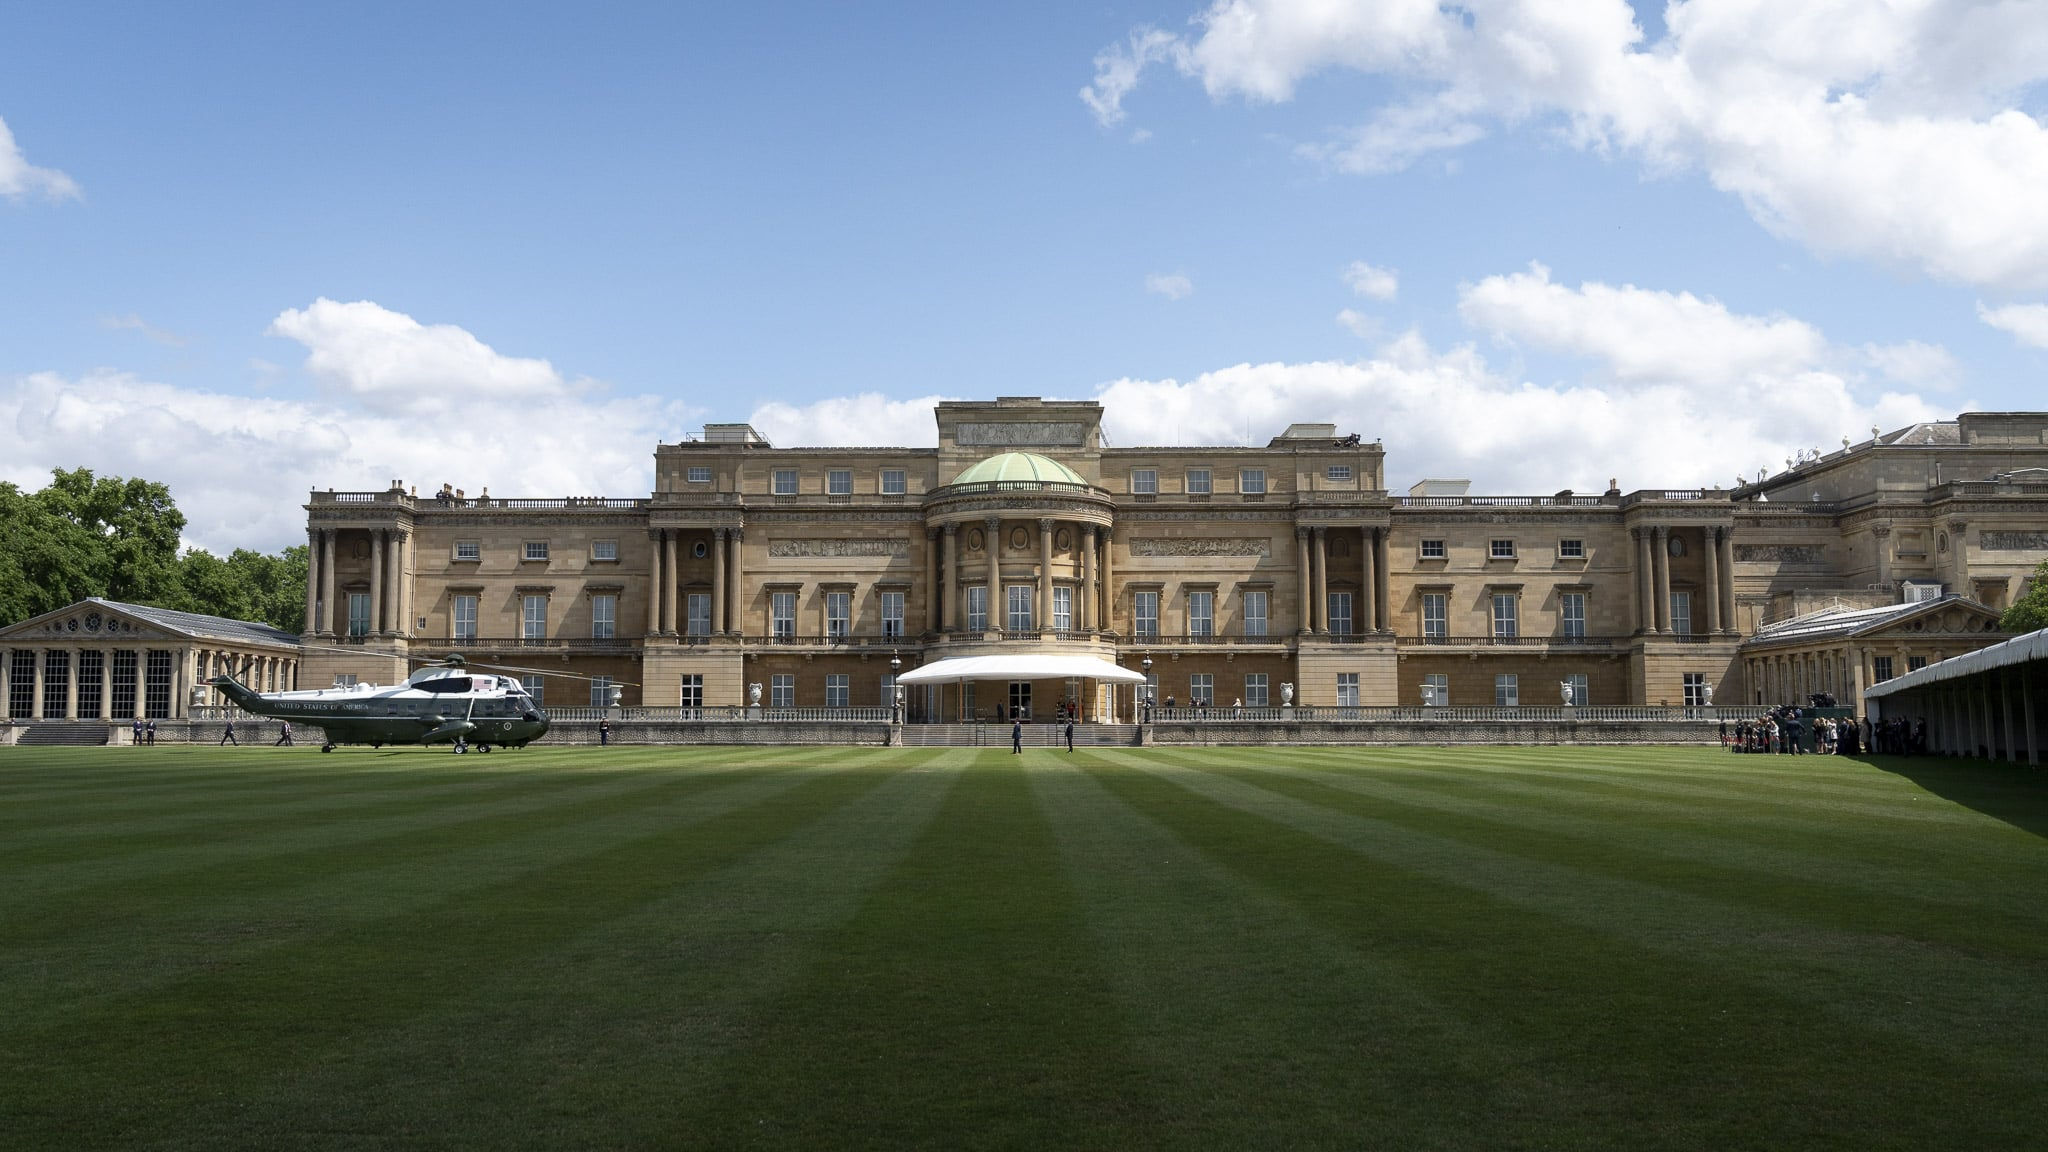 Ultimate Inside Buckingham Palace tour